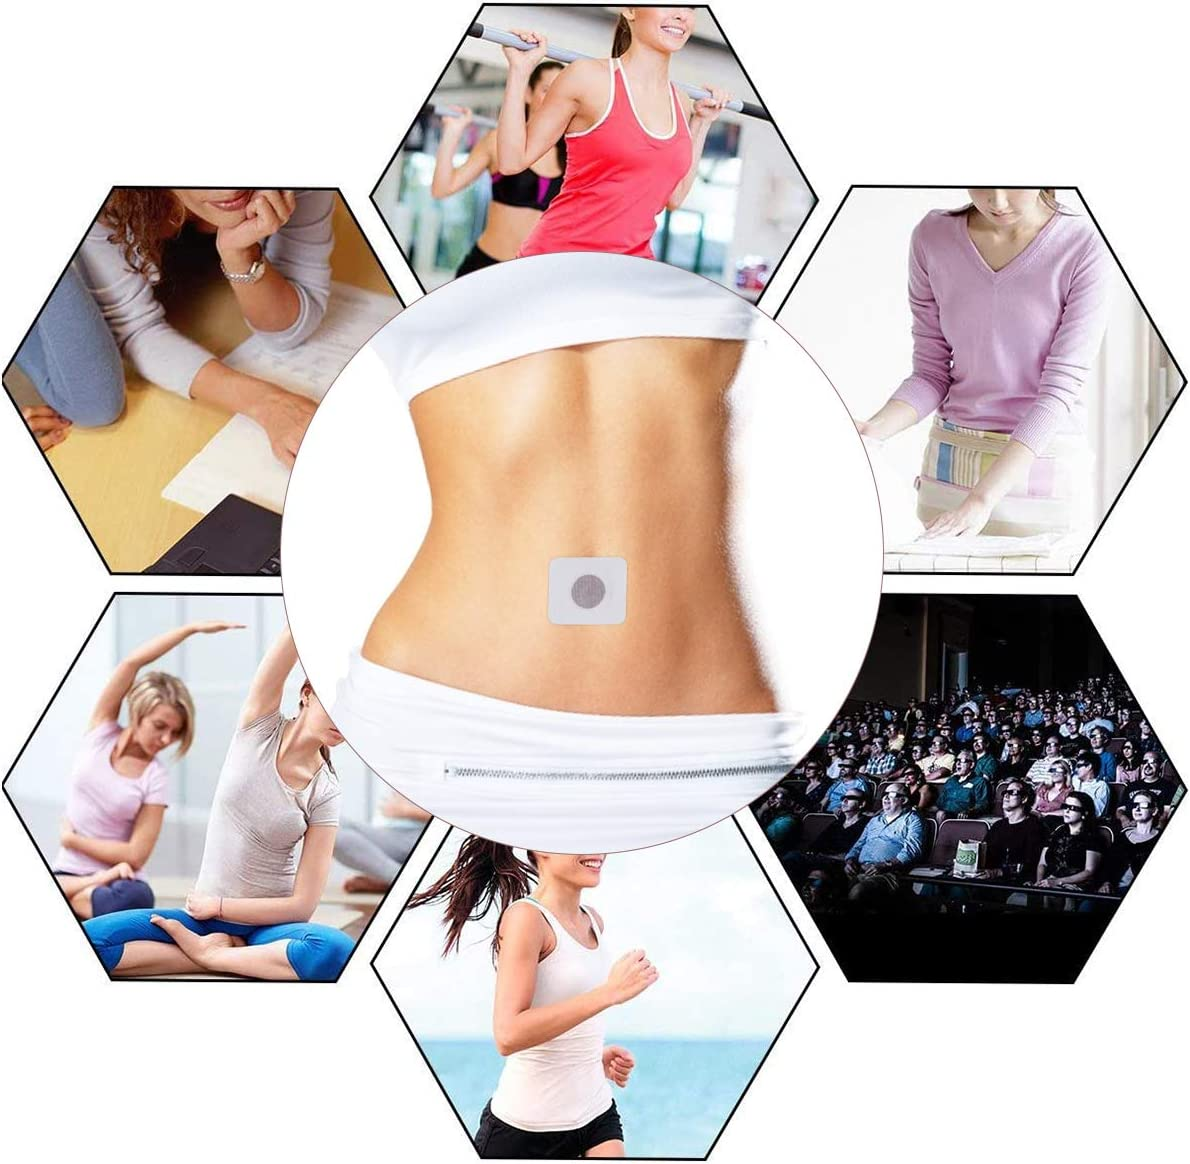 Weight Loss Sticker Charminer Fat Burning Sticker Magnetic Navel Sticker Quick Slimming Patch for Beer Belly Buckets Waist Waist Abdominal Fat Keep Healthy and Beauty 40Pcs-Black